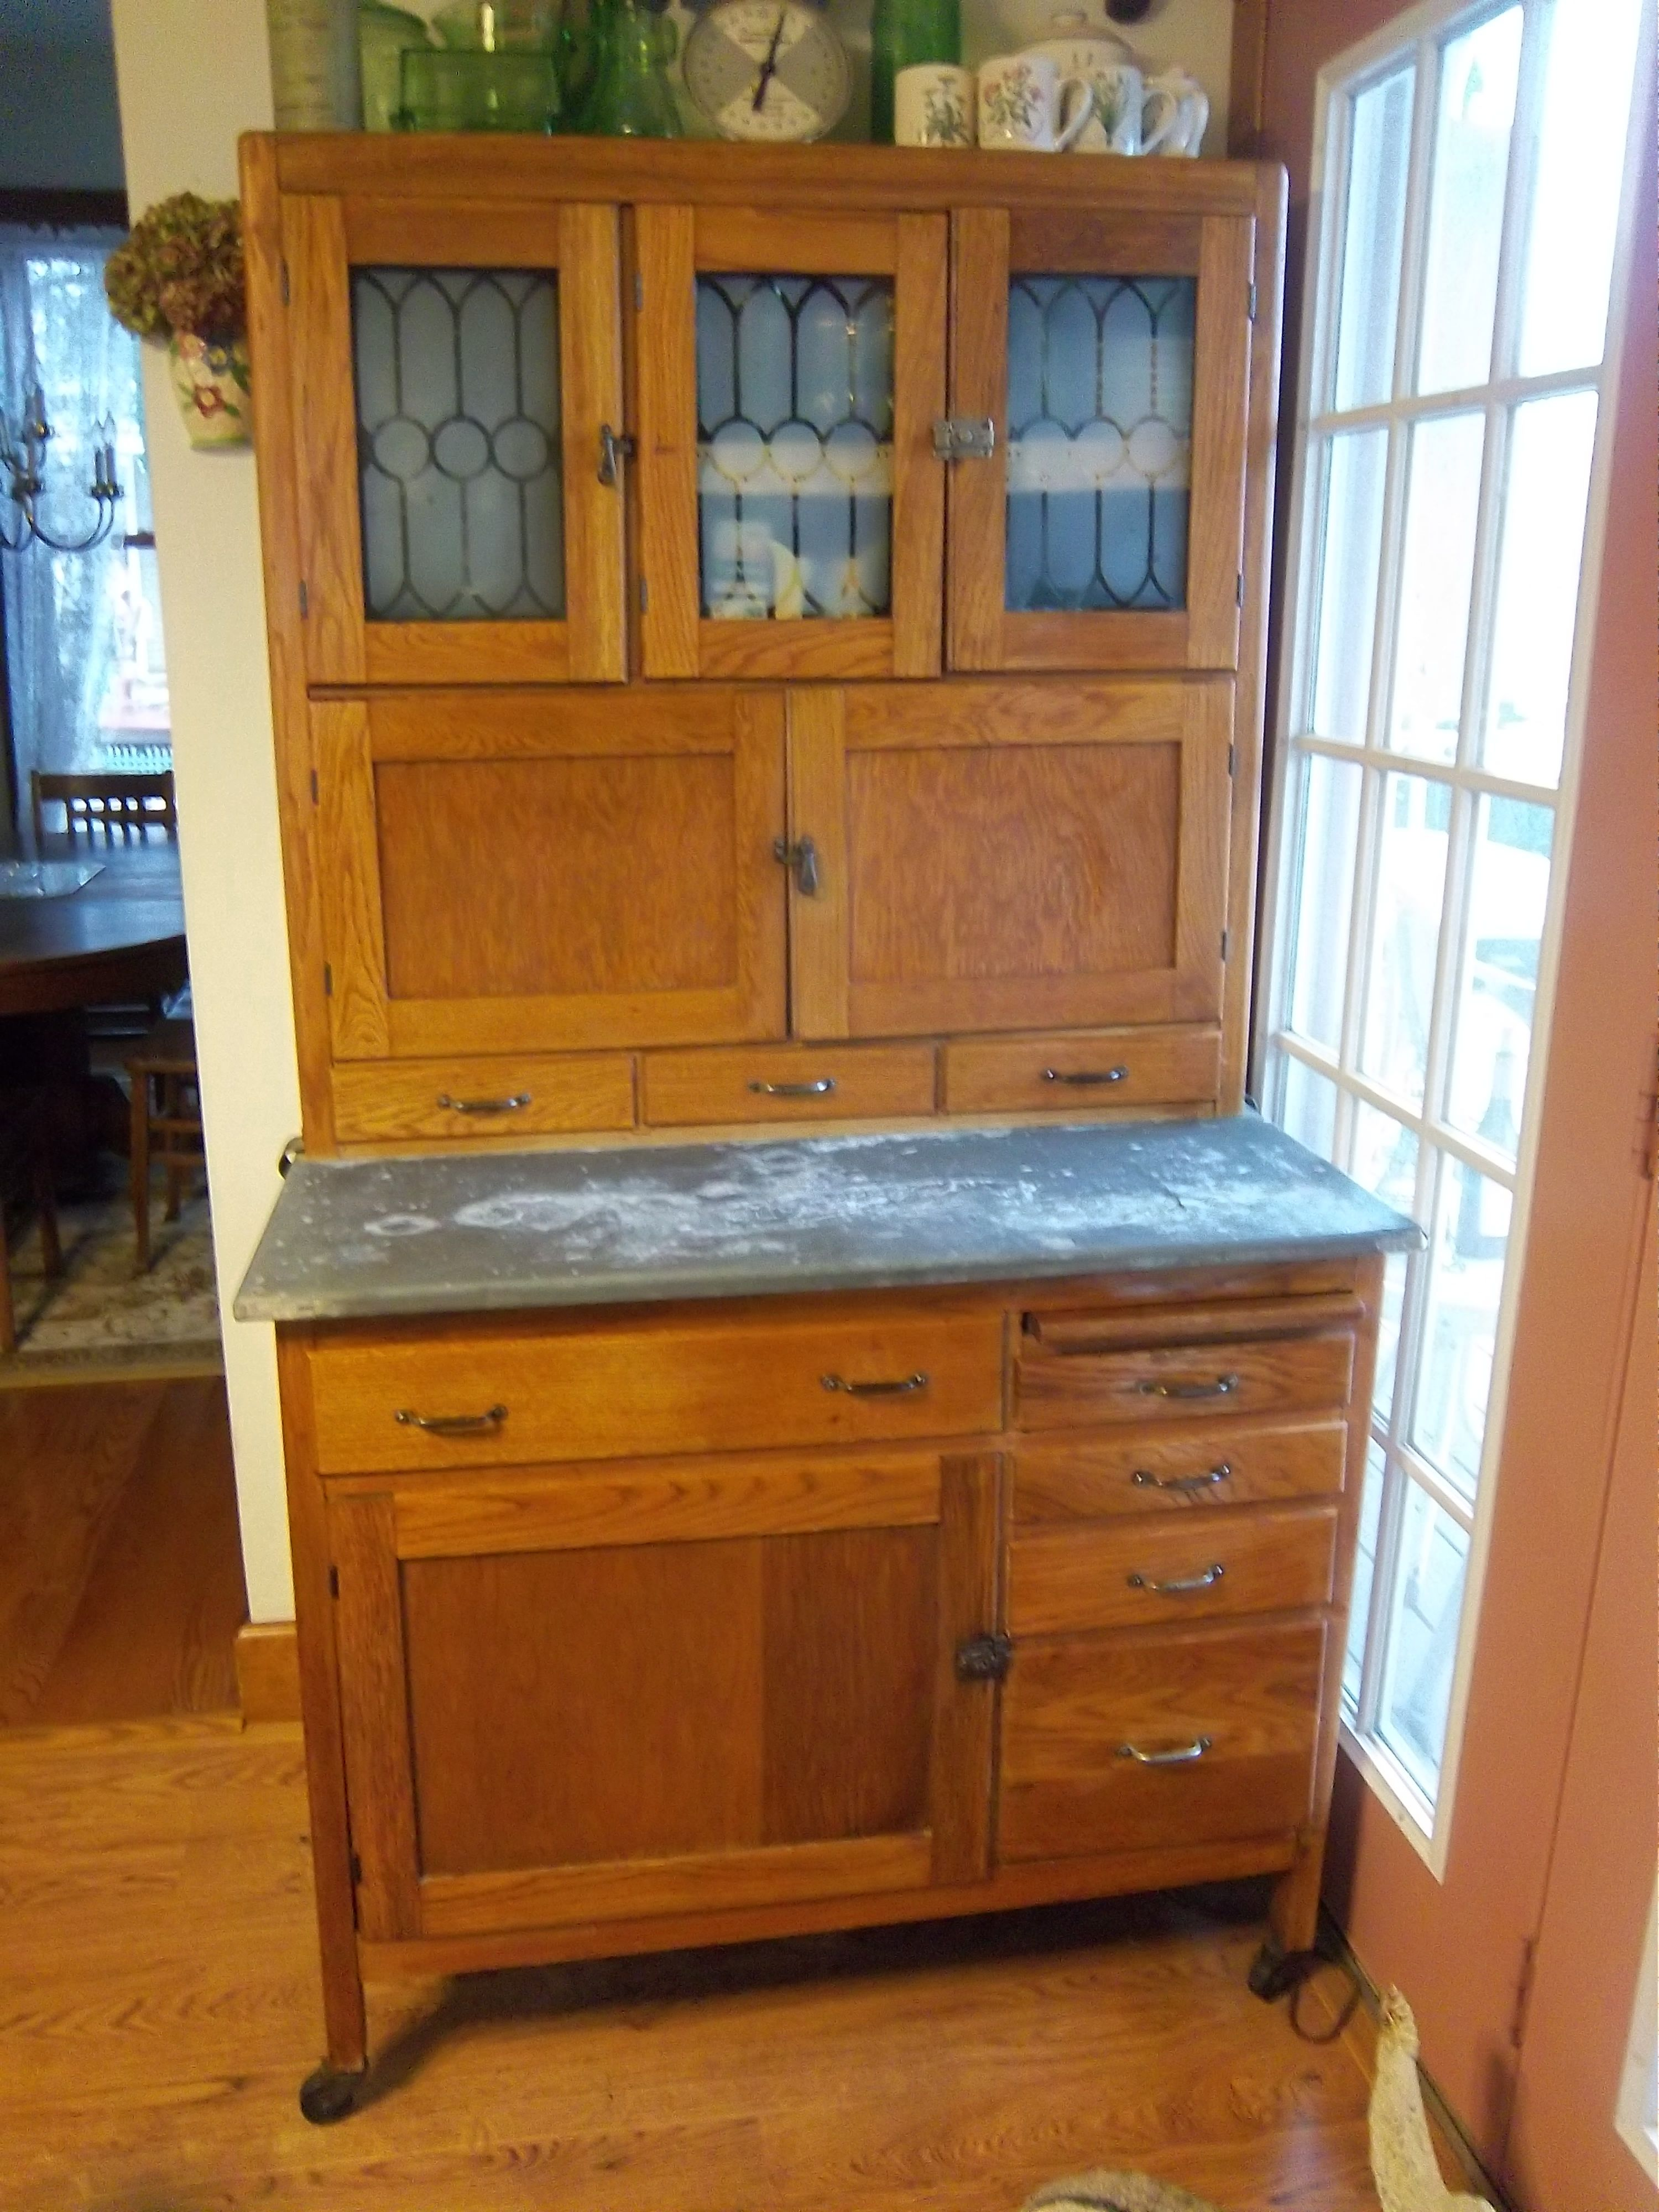 My Hoosier Cabinet made by Montgomery Ward